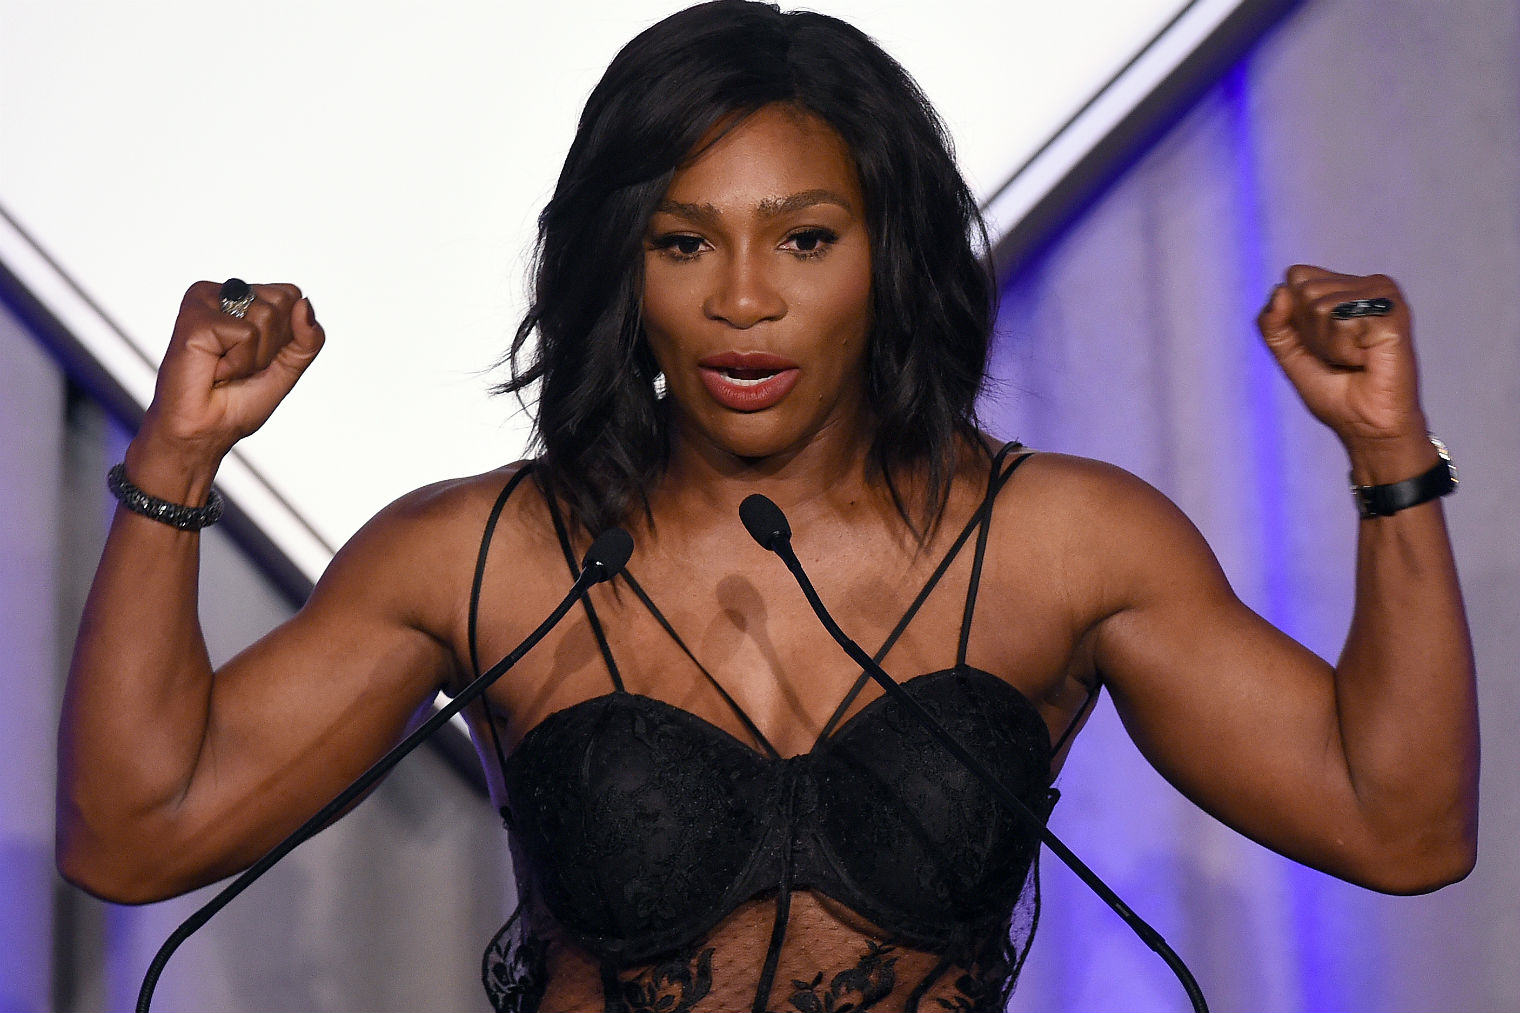 Serena Williams Sportsperson Of The Year Speech Just Destroyed Haters serenasport